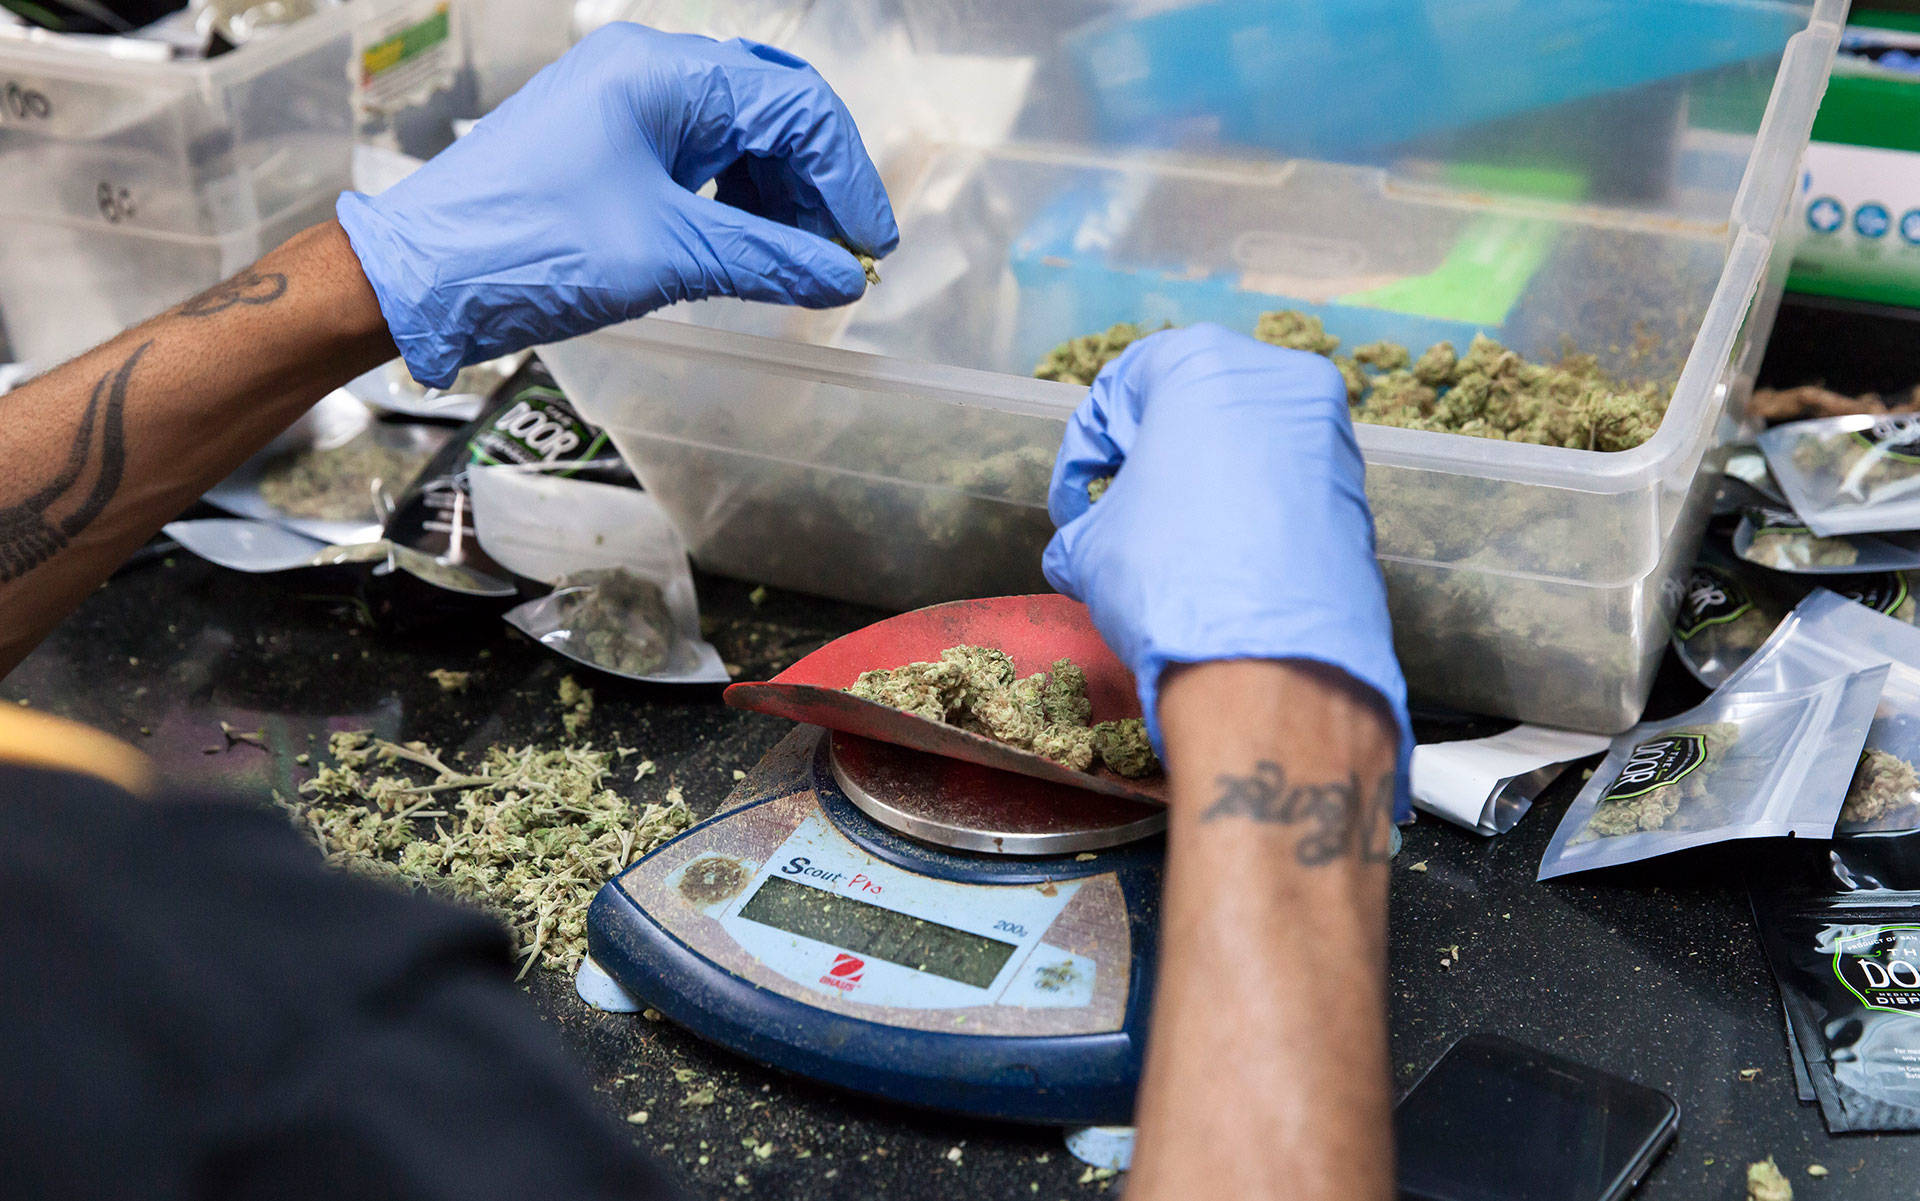 Cannabis buds are weighed out before being packaged at a medical marijuana dispensary in San Francisco. Brittany Hosea-Small/KQED